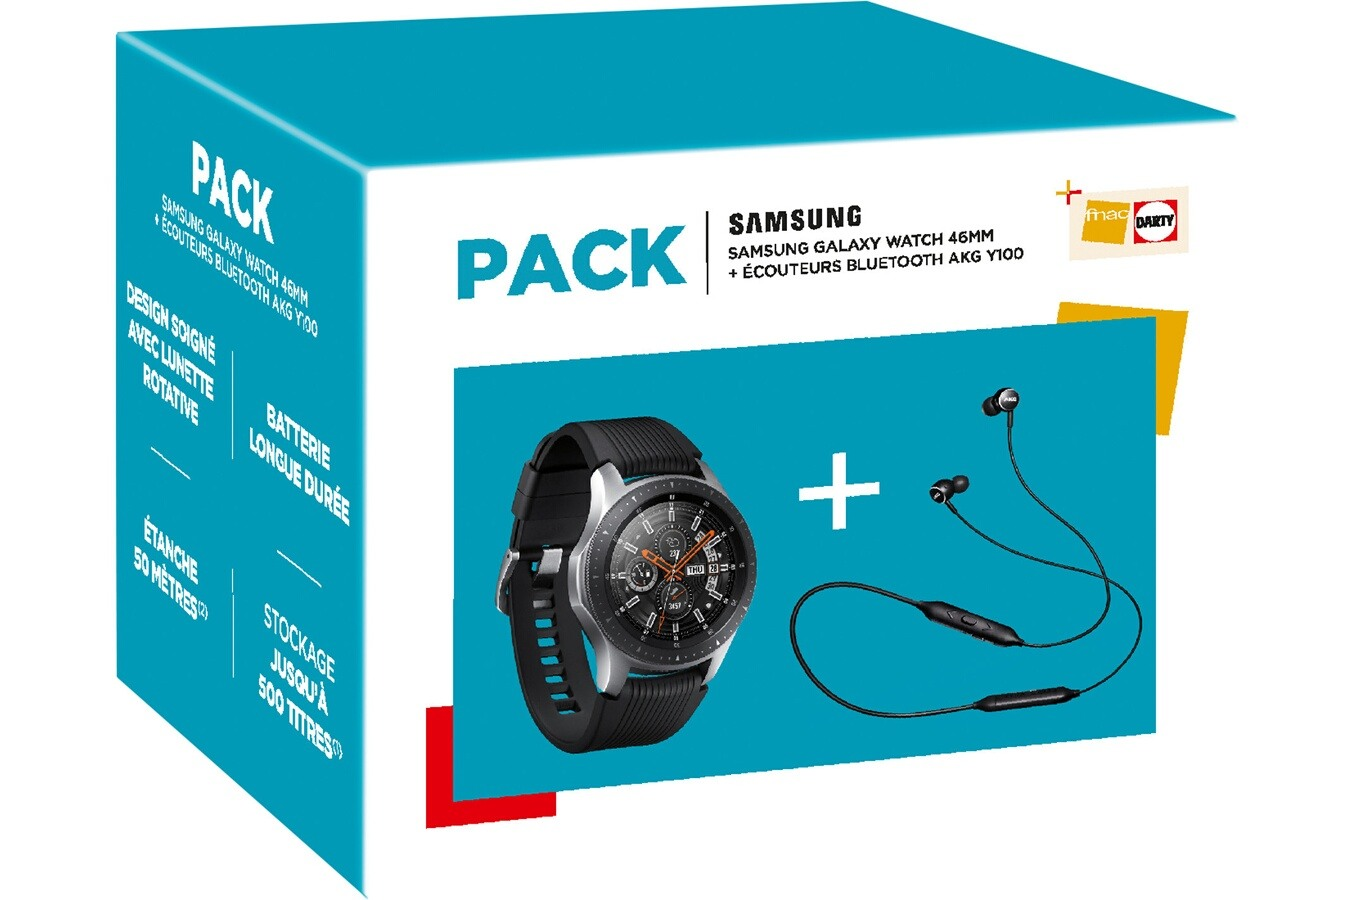 pack samsung ecouteur